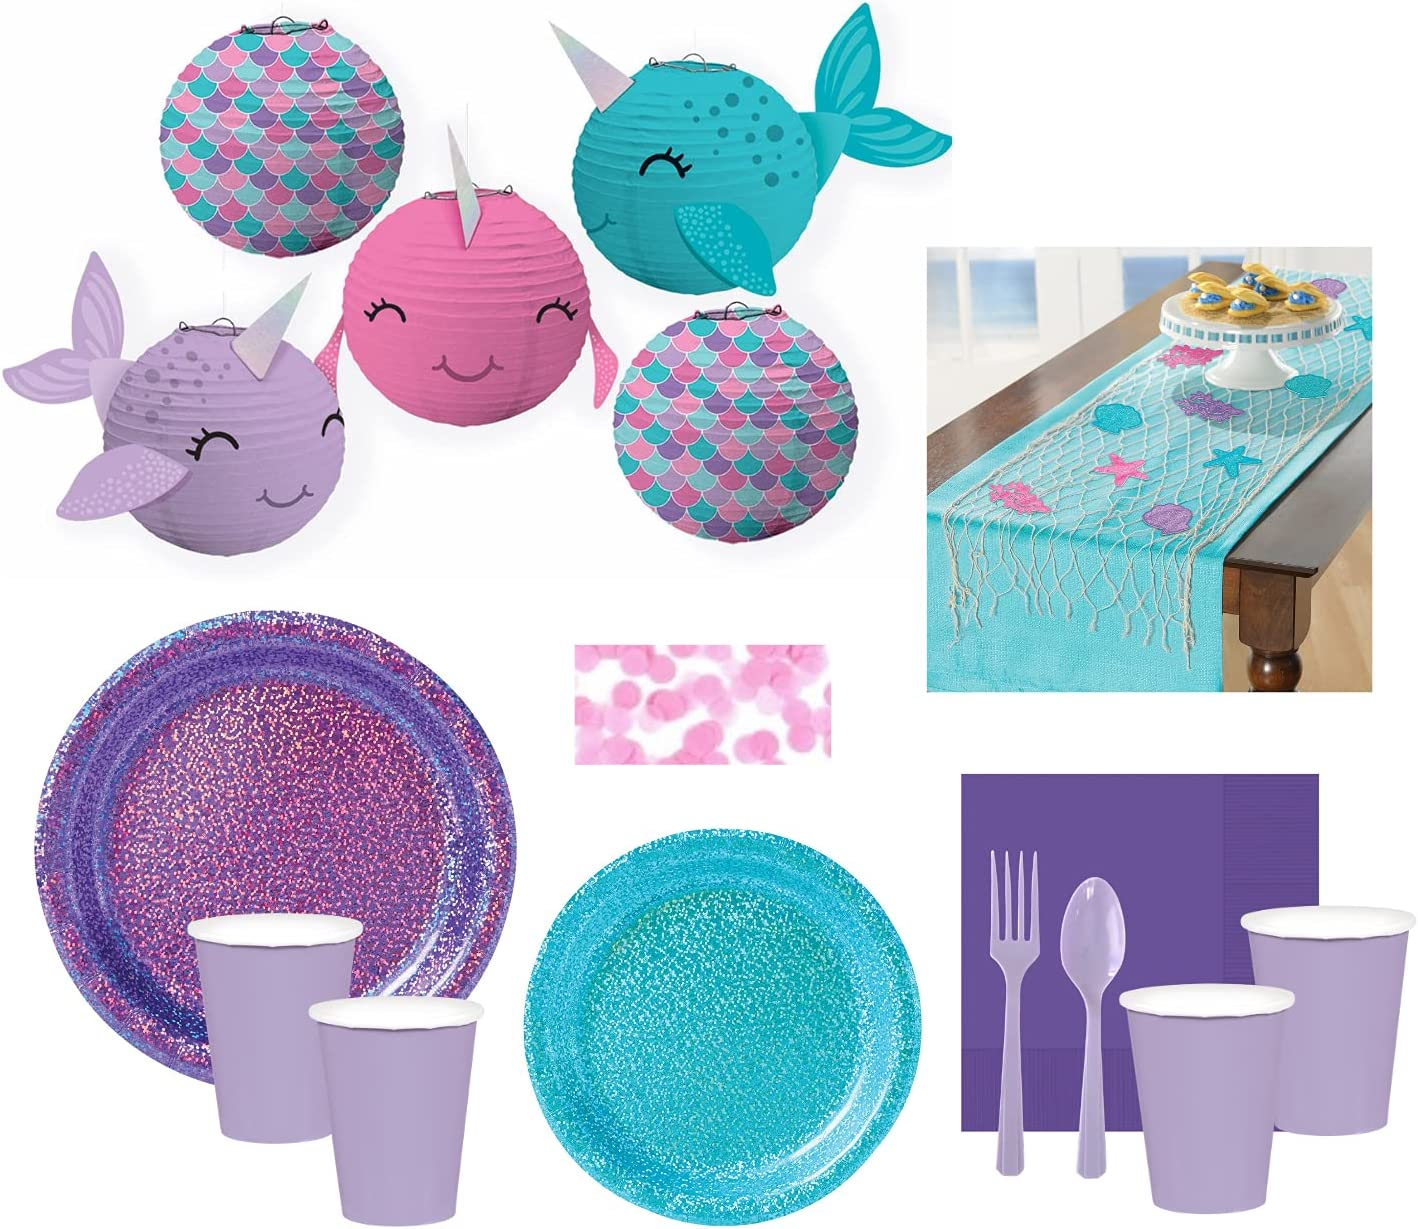 Narwhal Party Supplies and Decoration Set - 16 Guests Japan's Max 88% OFF largest assortment Includ for